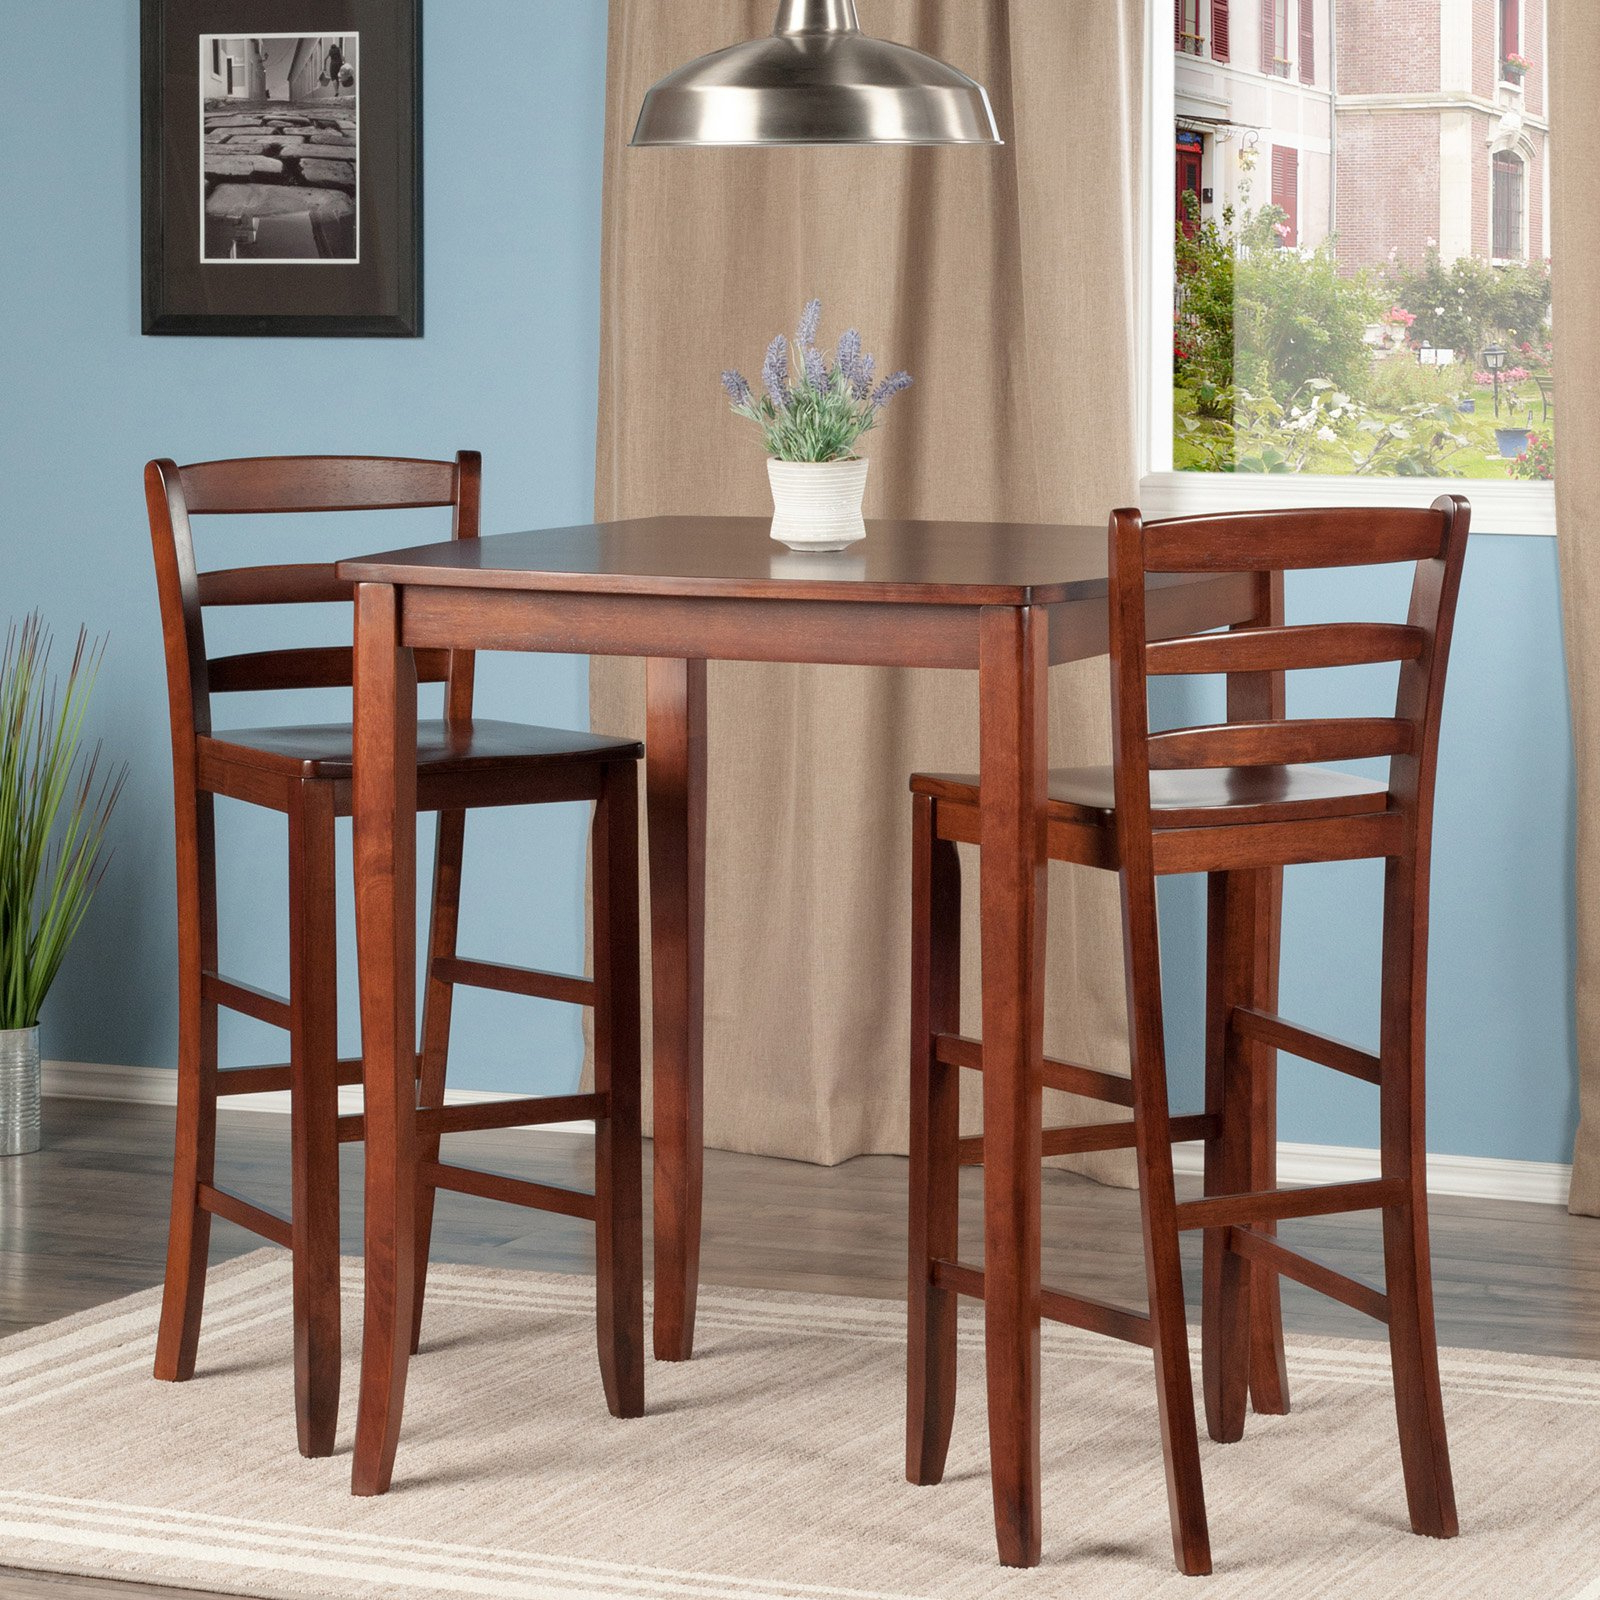 Well Known Winsome Inglewood 3 Piece Pub Table Set With Ladder Back Stools In In Winsome 3 Piece Counter Height Dining Sets (View 9 of 25)